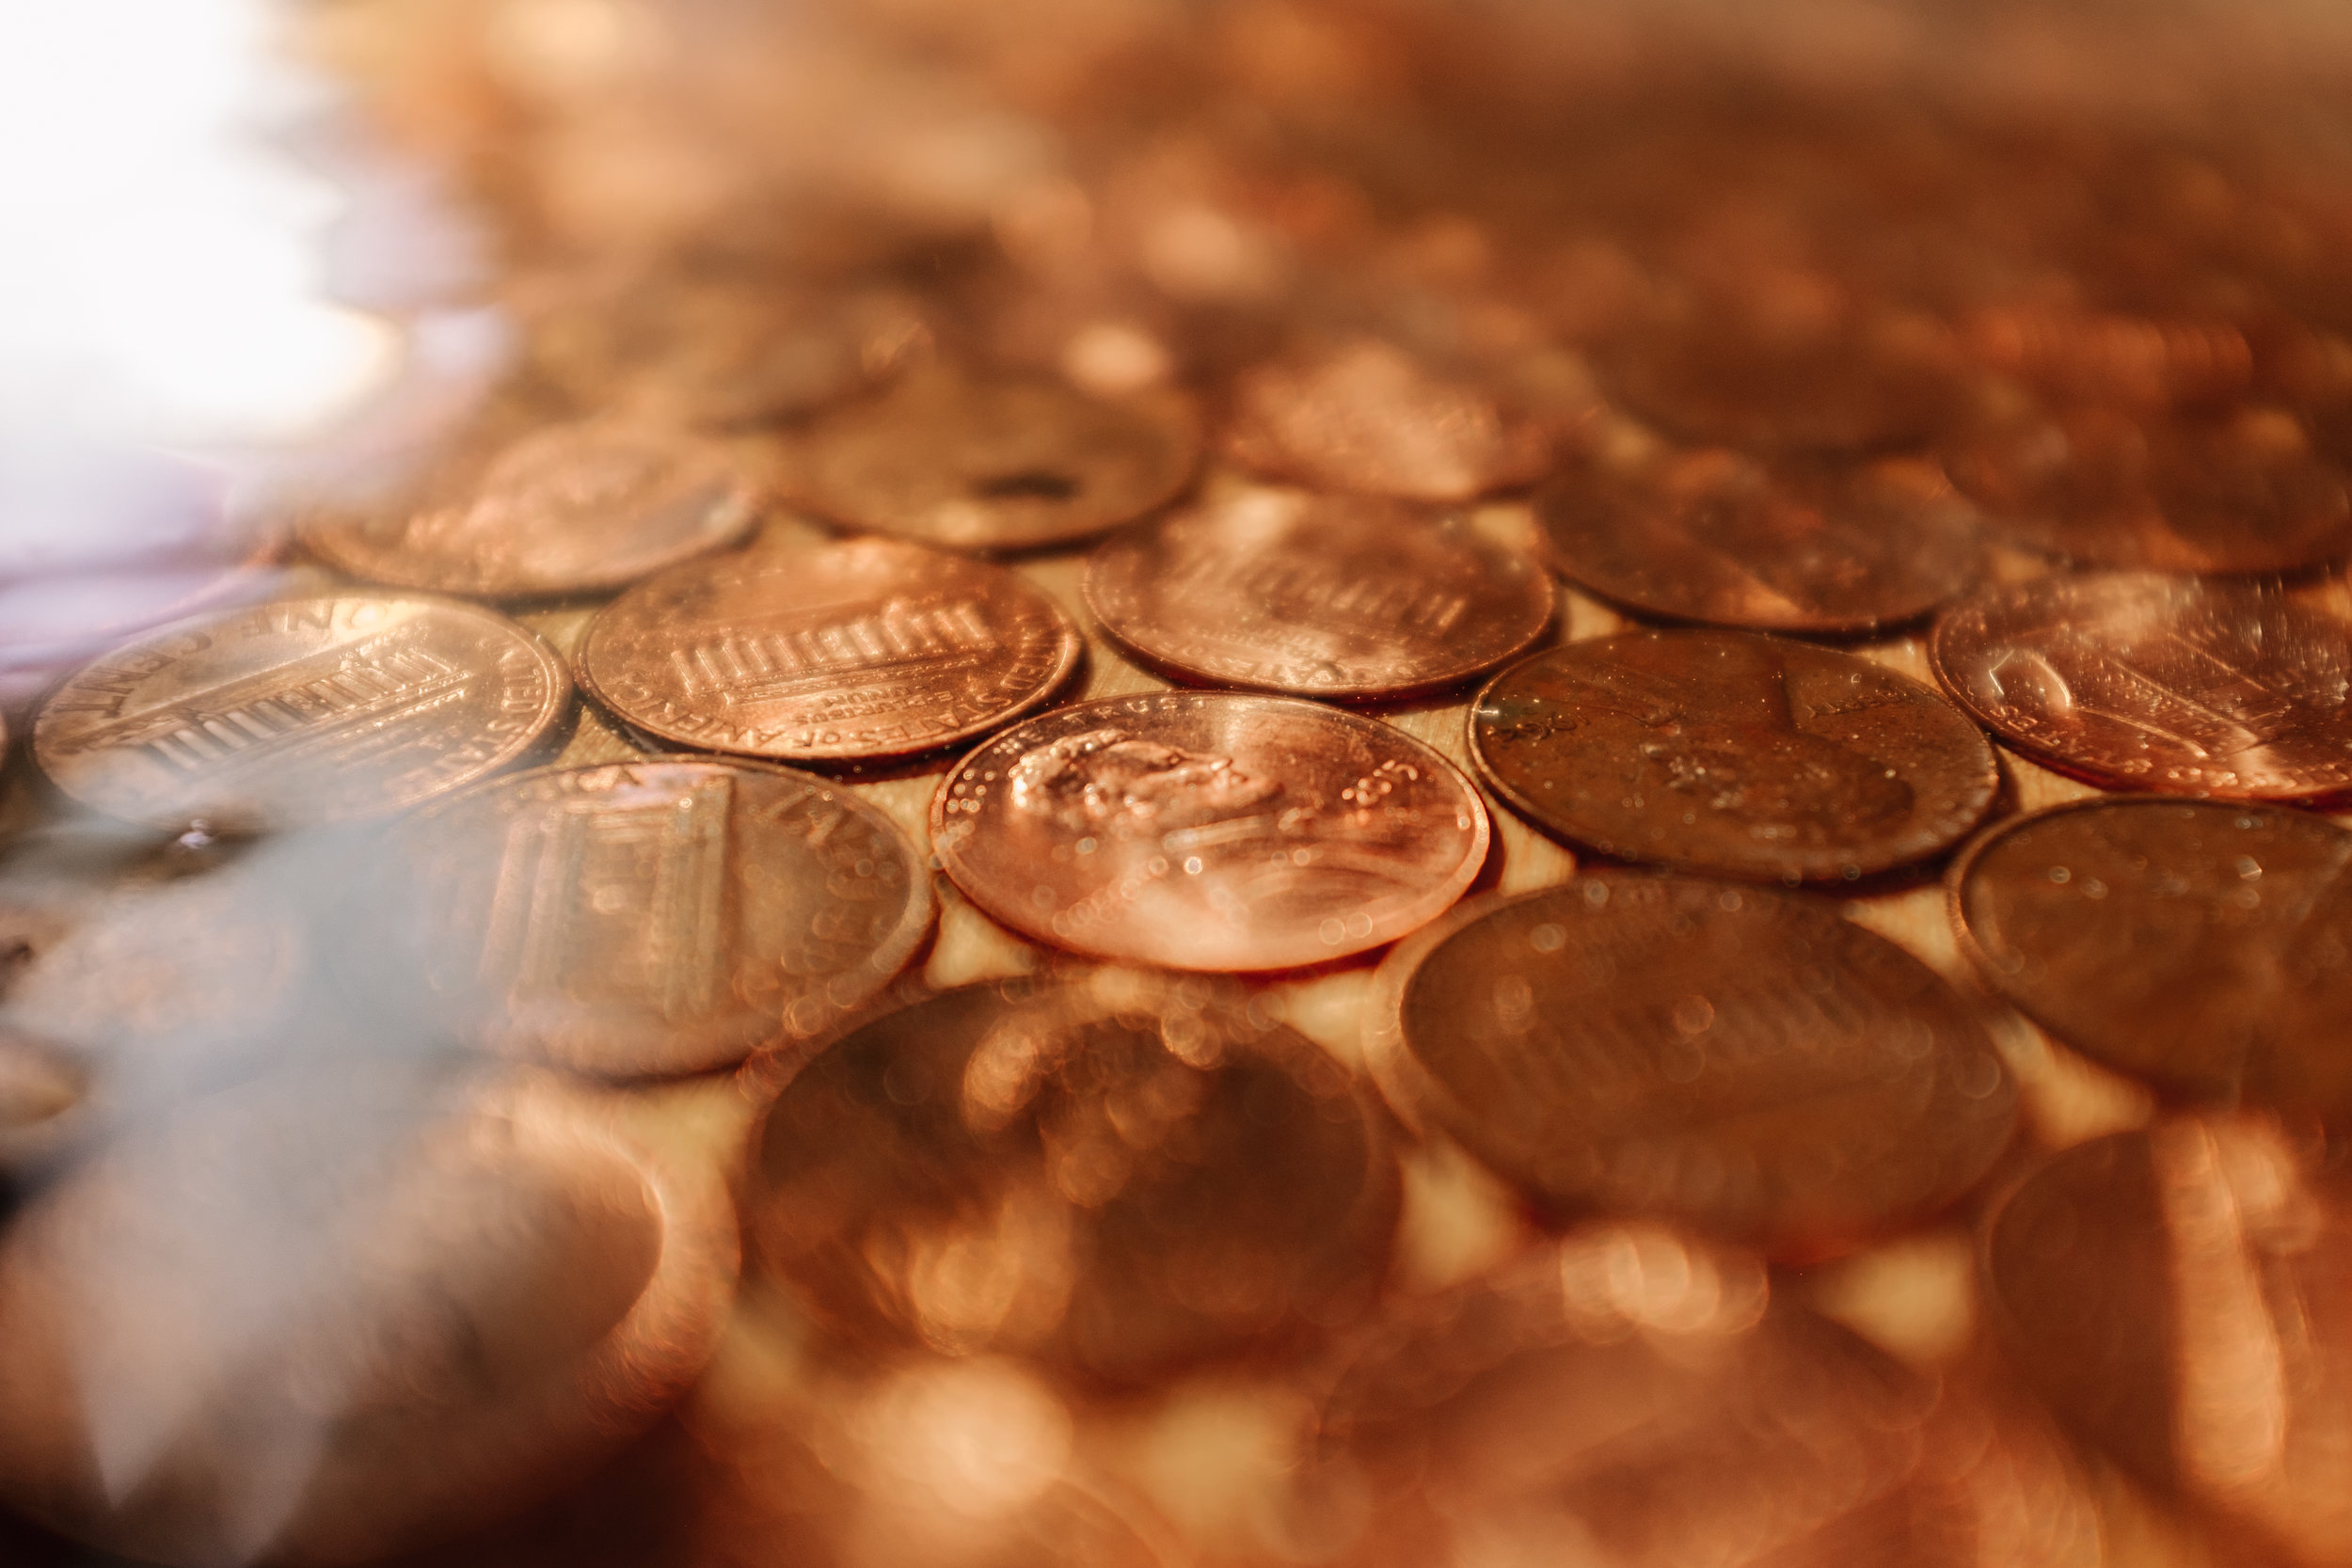 The Big Whimsy by Wind River Tiny Homes - custom penny counter top, 30 thousand+ pennies